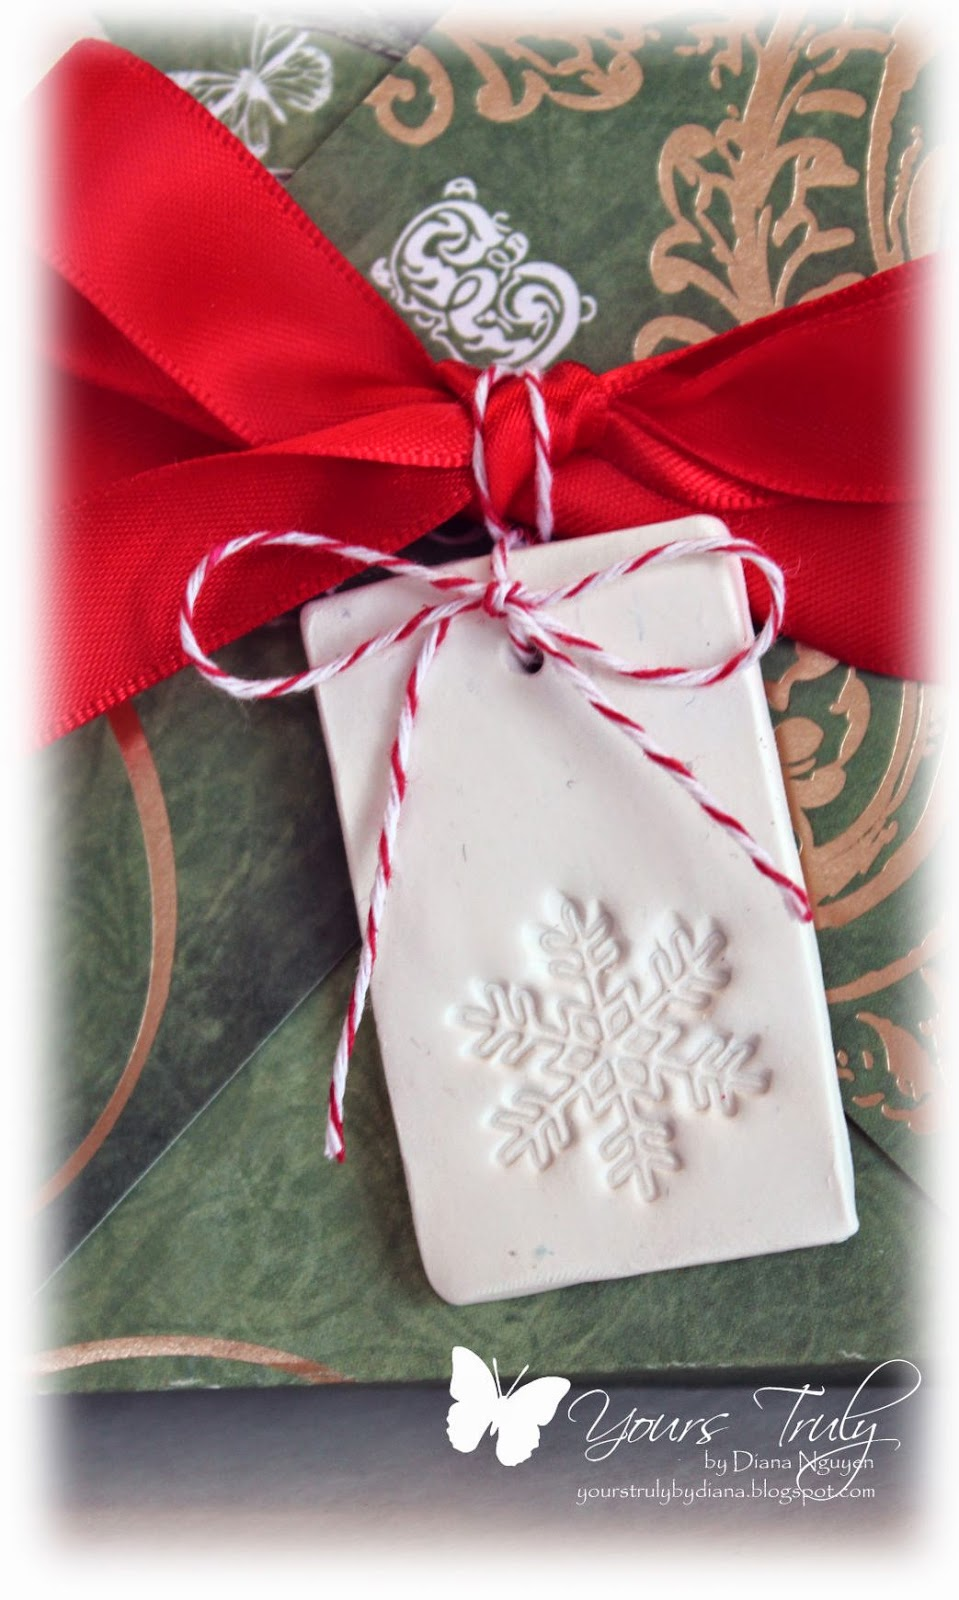 Diana Nguyen, teacher gift, ornament, clay, stamp